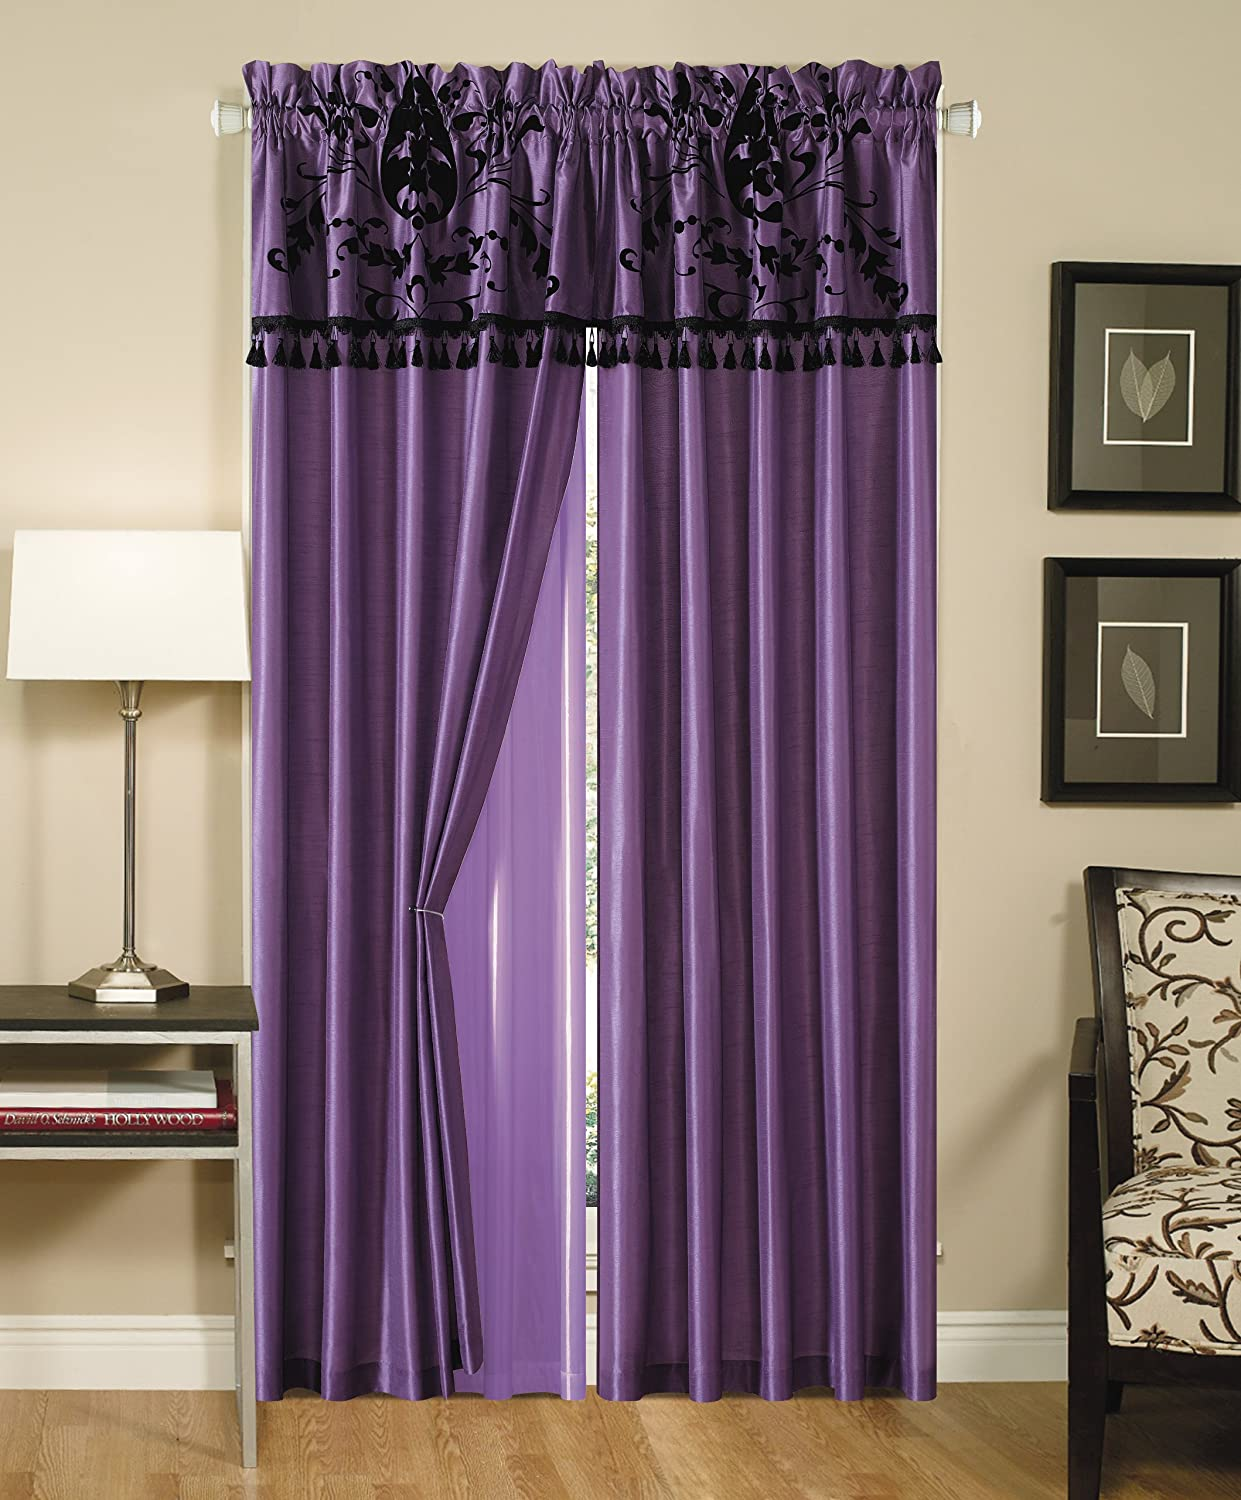 2-Panel Floral Flocking Window Curtain/Drape Set, Purple and Black